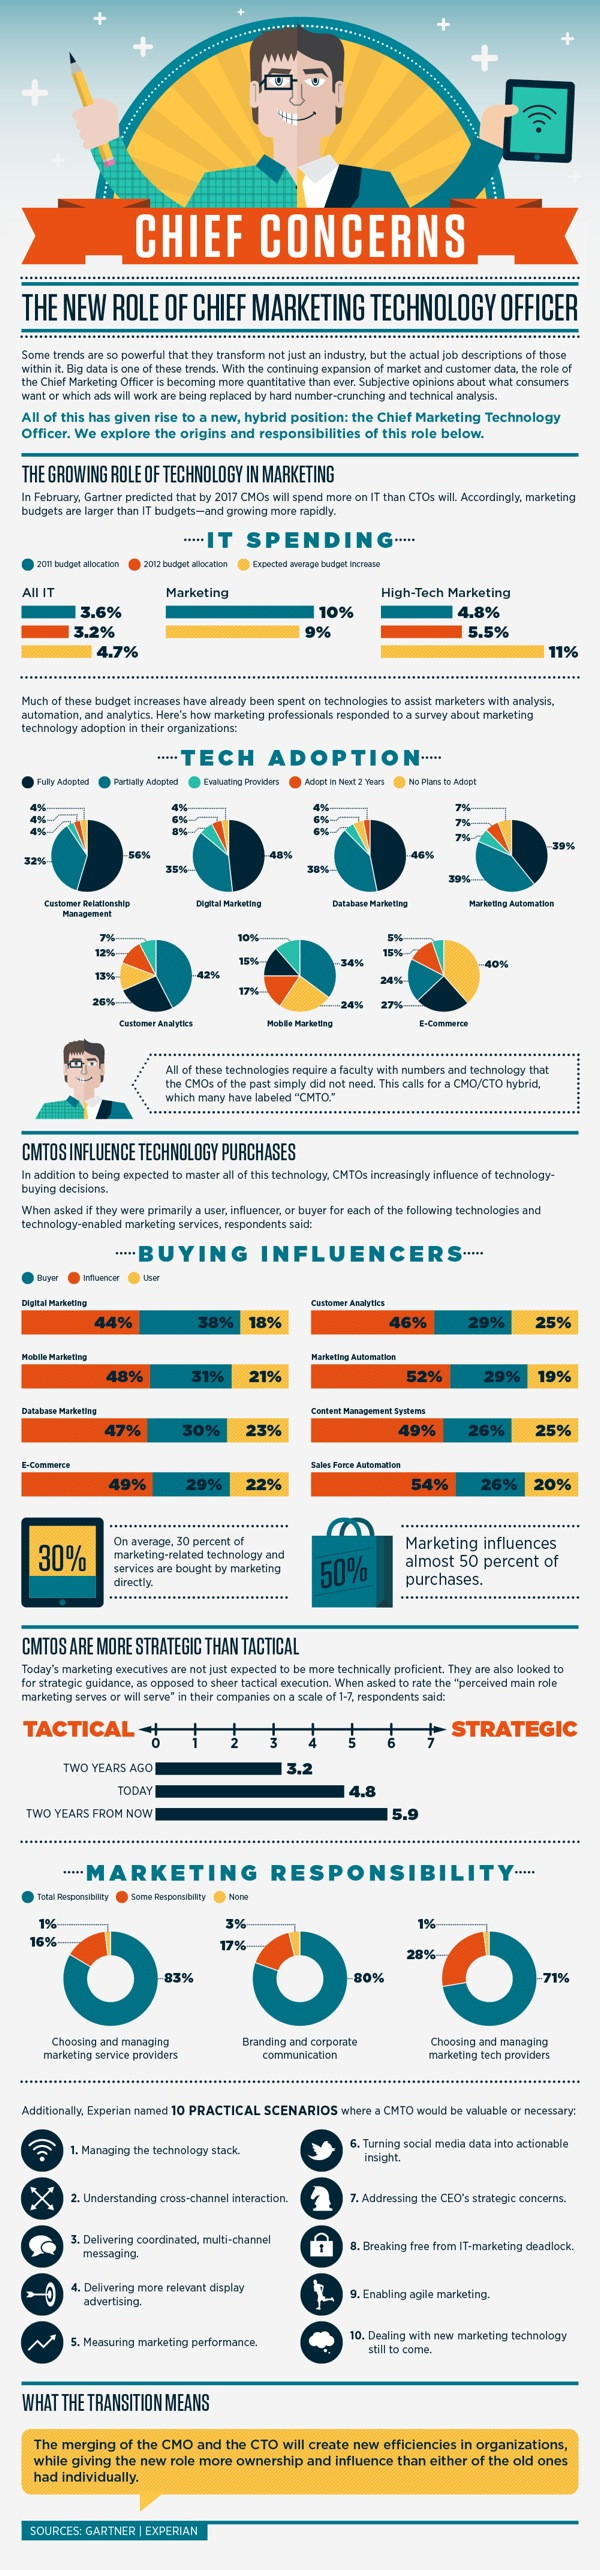 New Job/New Role - Chief Marketing Technology Officer - Infographic